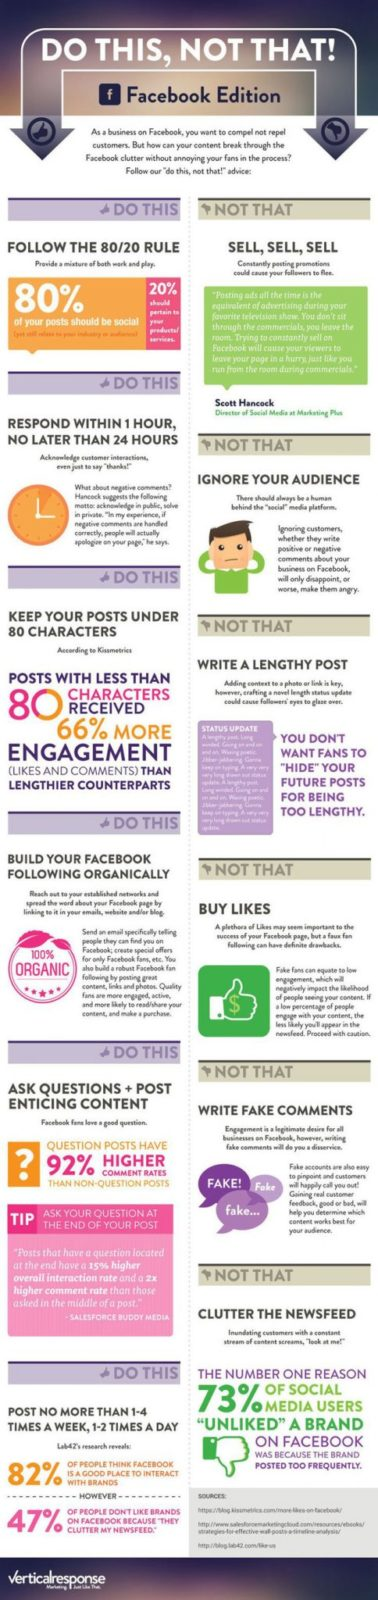 """""""Do This, Not That"""" Advice for Facebook Successful Business Page - Infographic"""